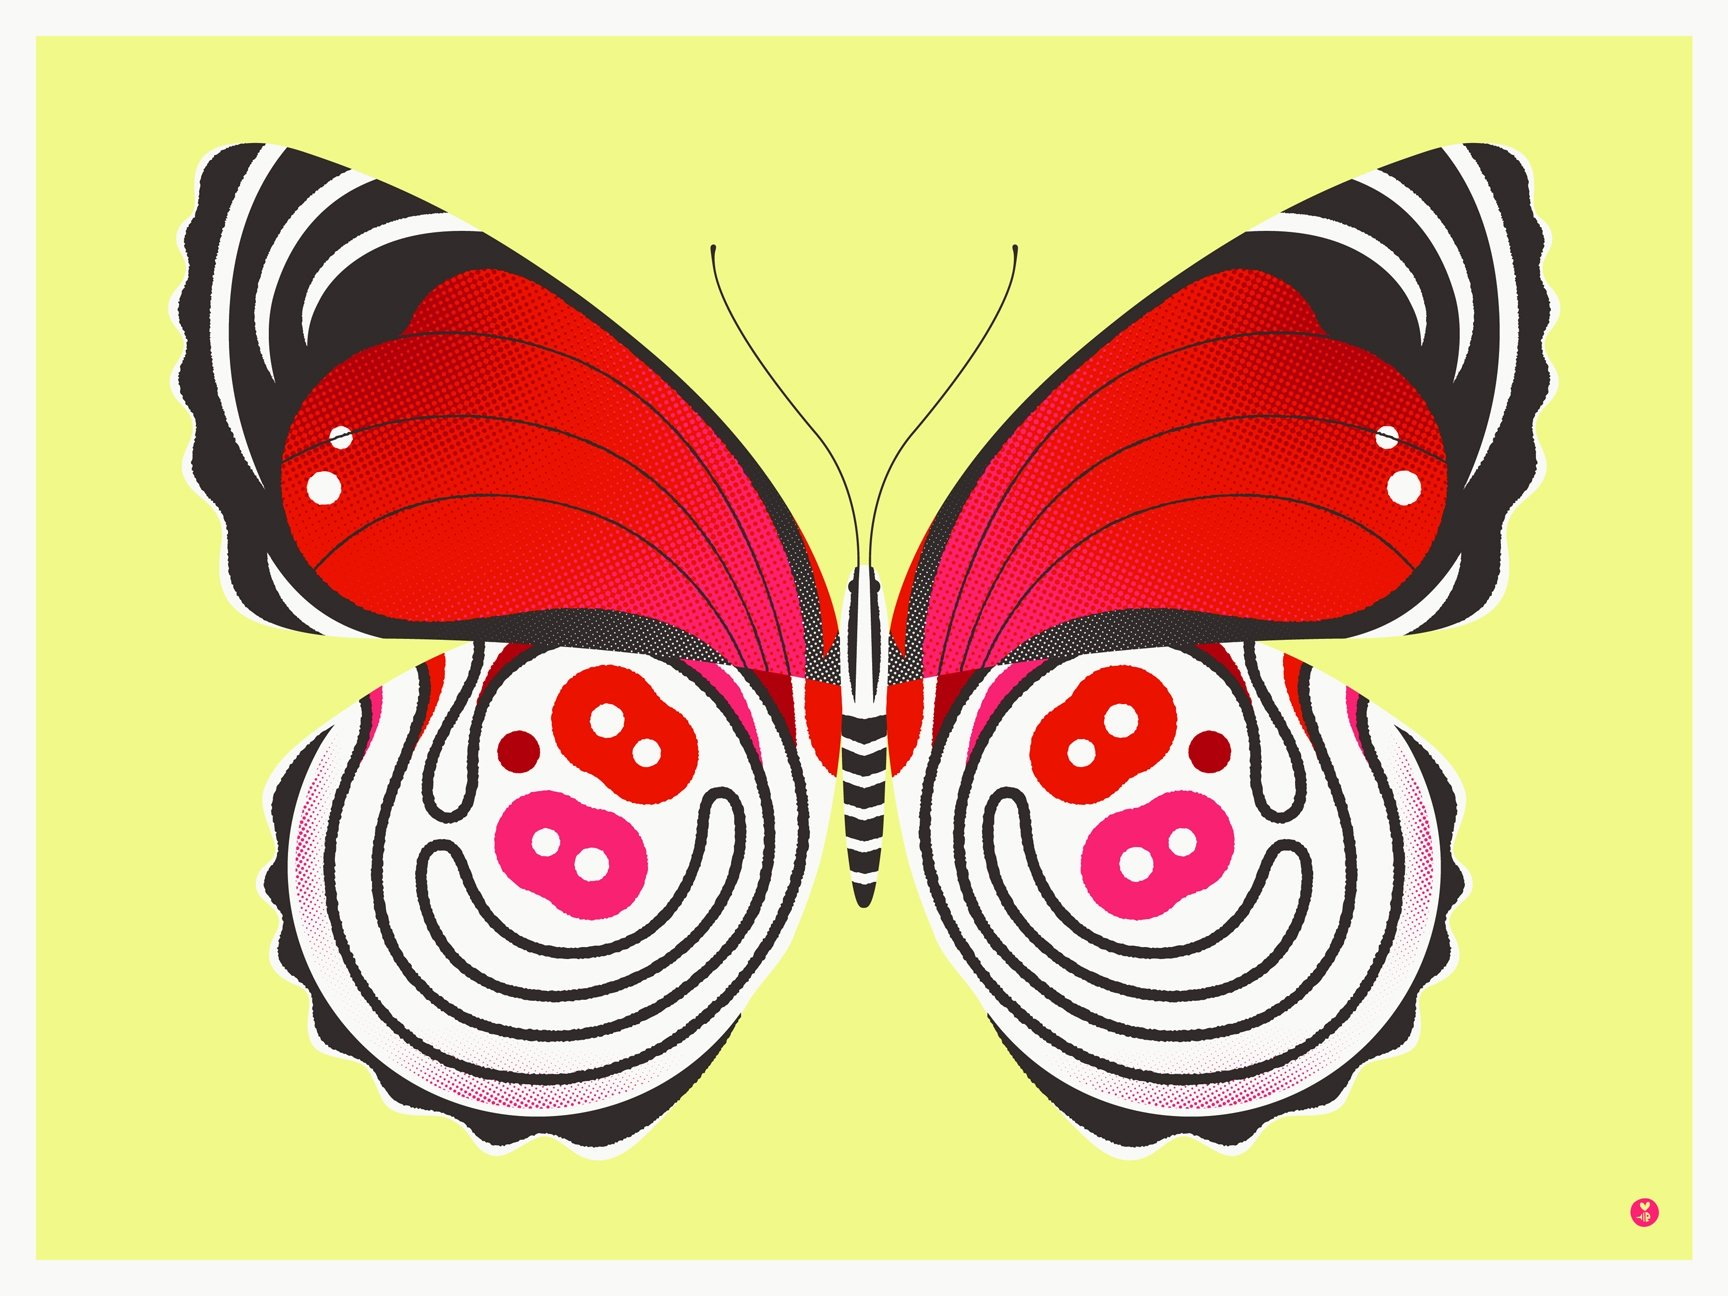 88 butterfly by